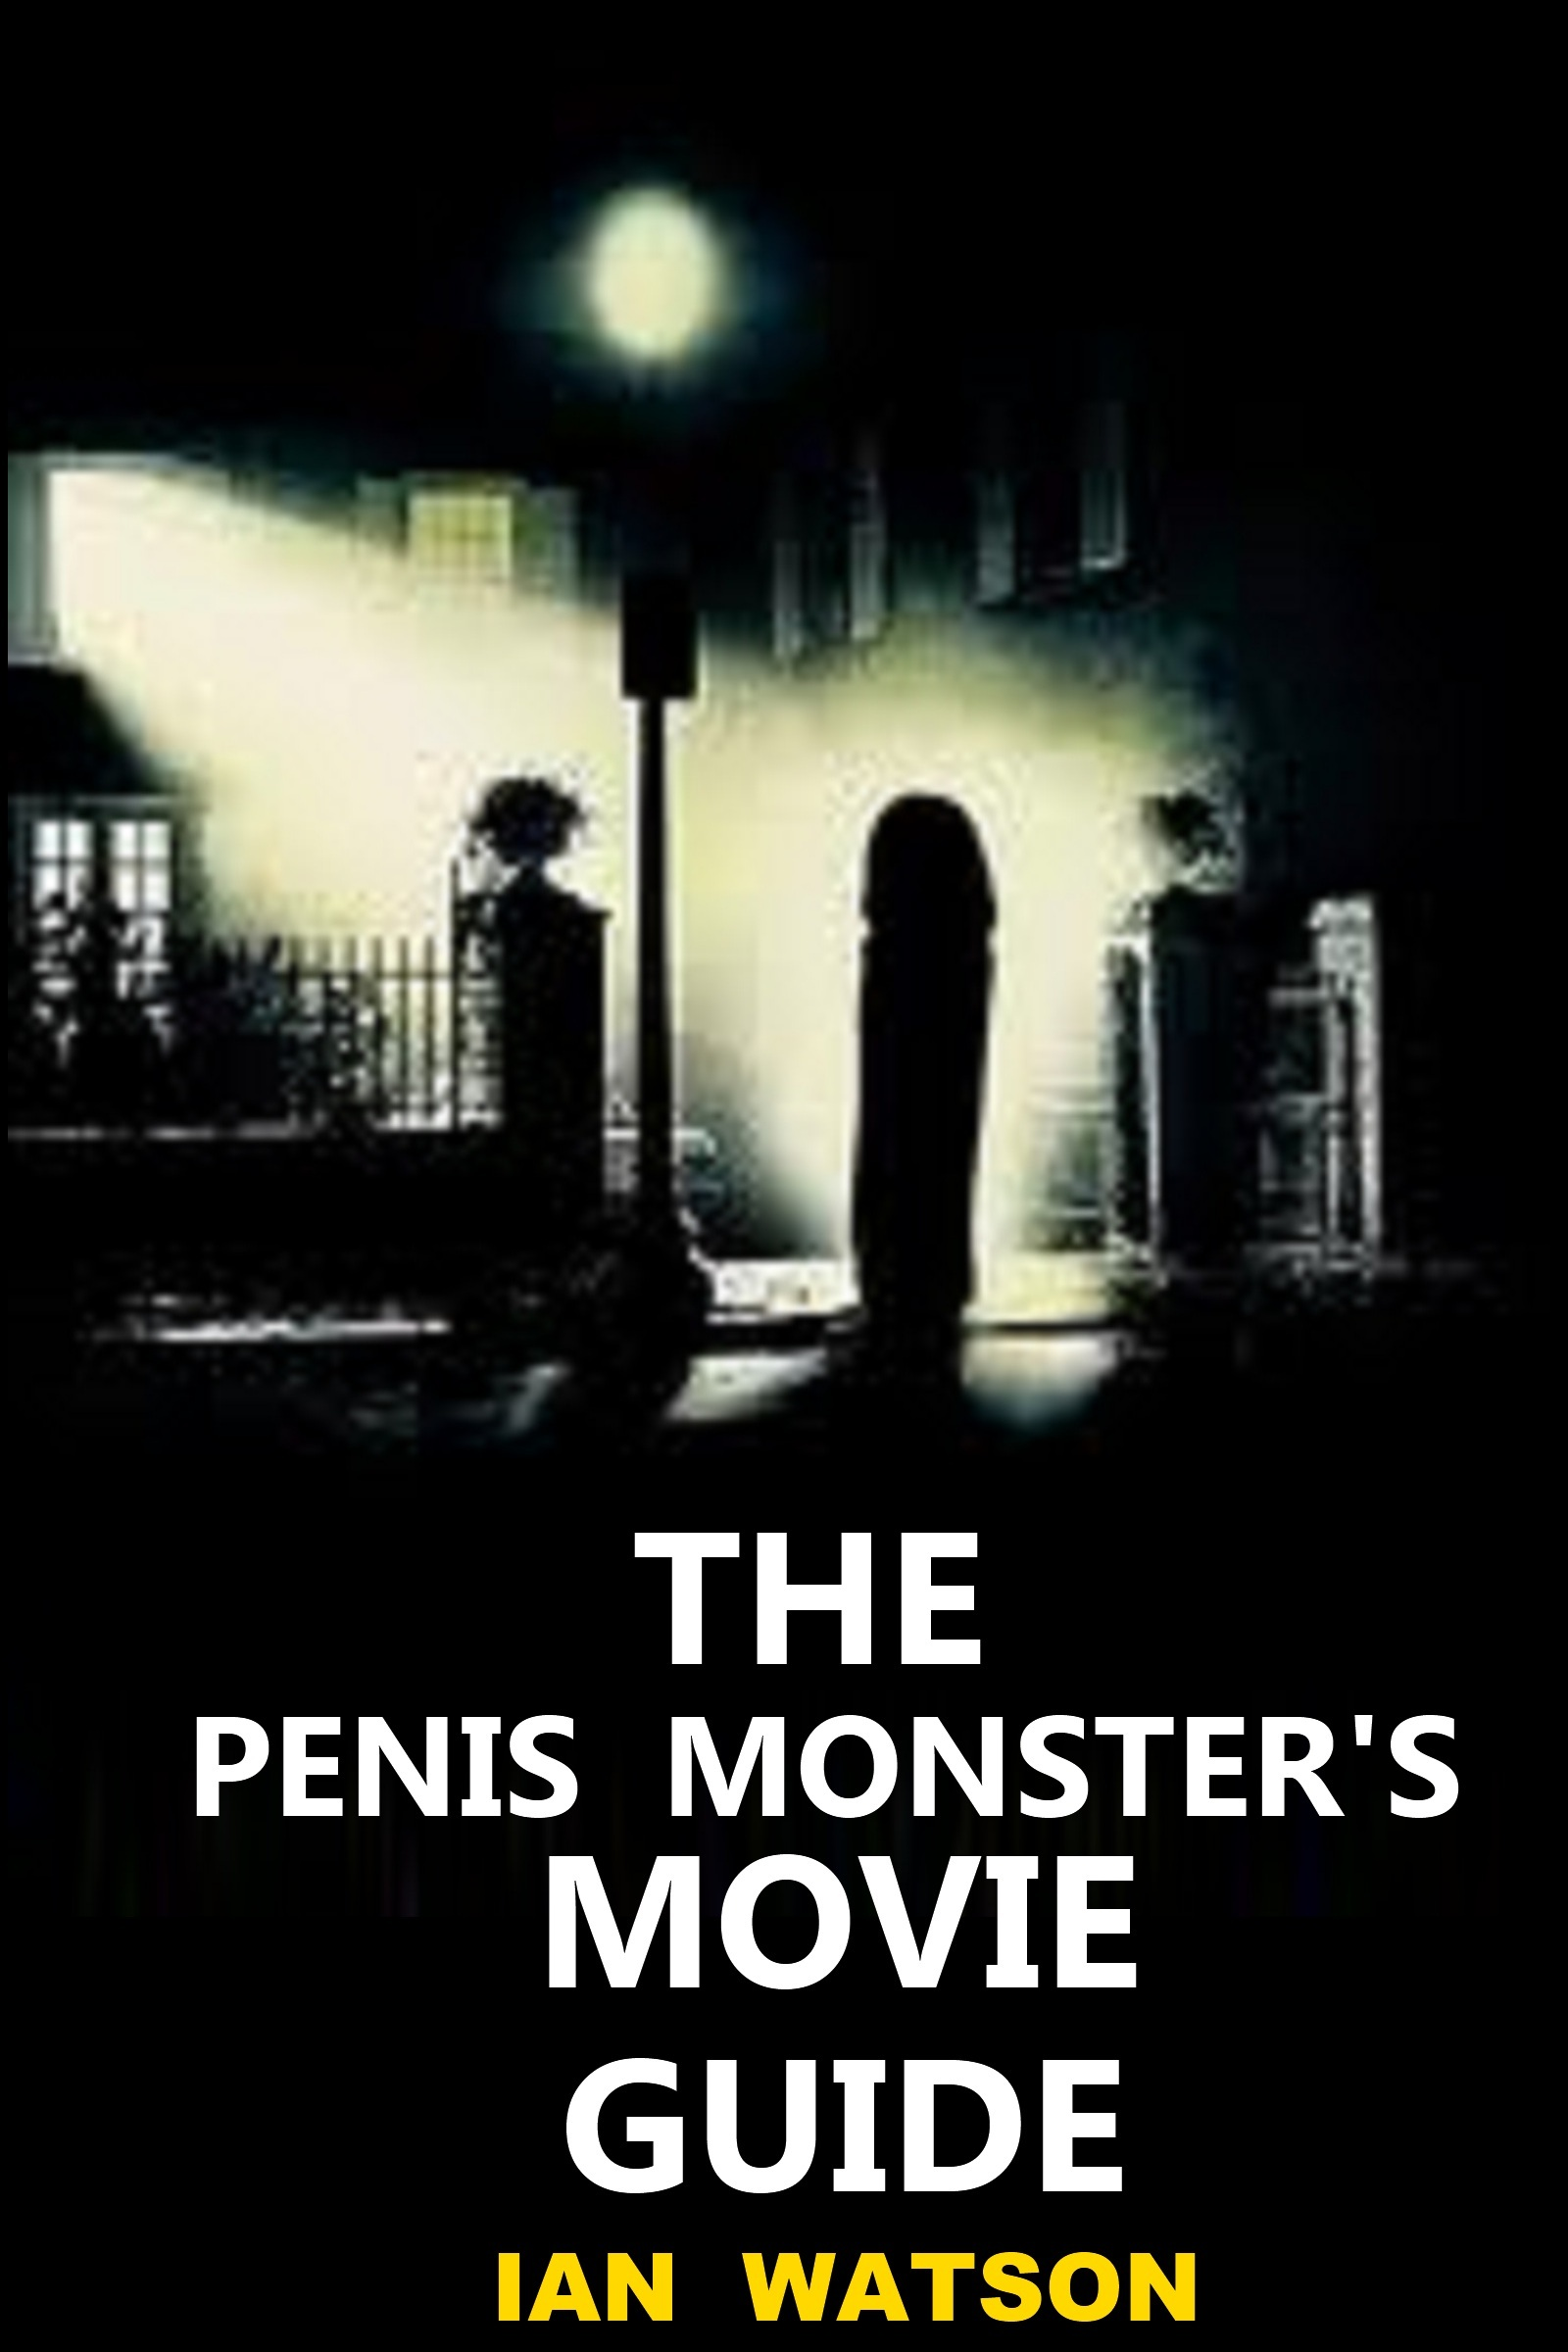 The Penis Monster's Movie Guide